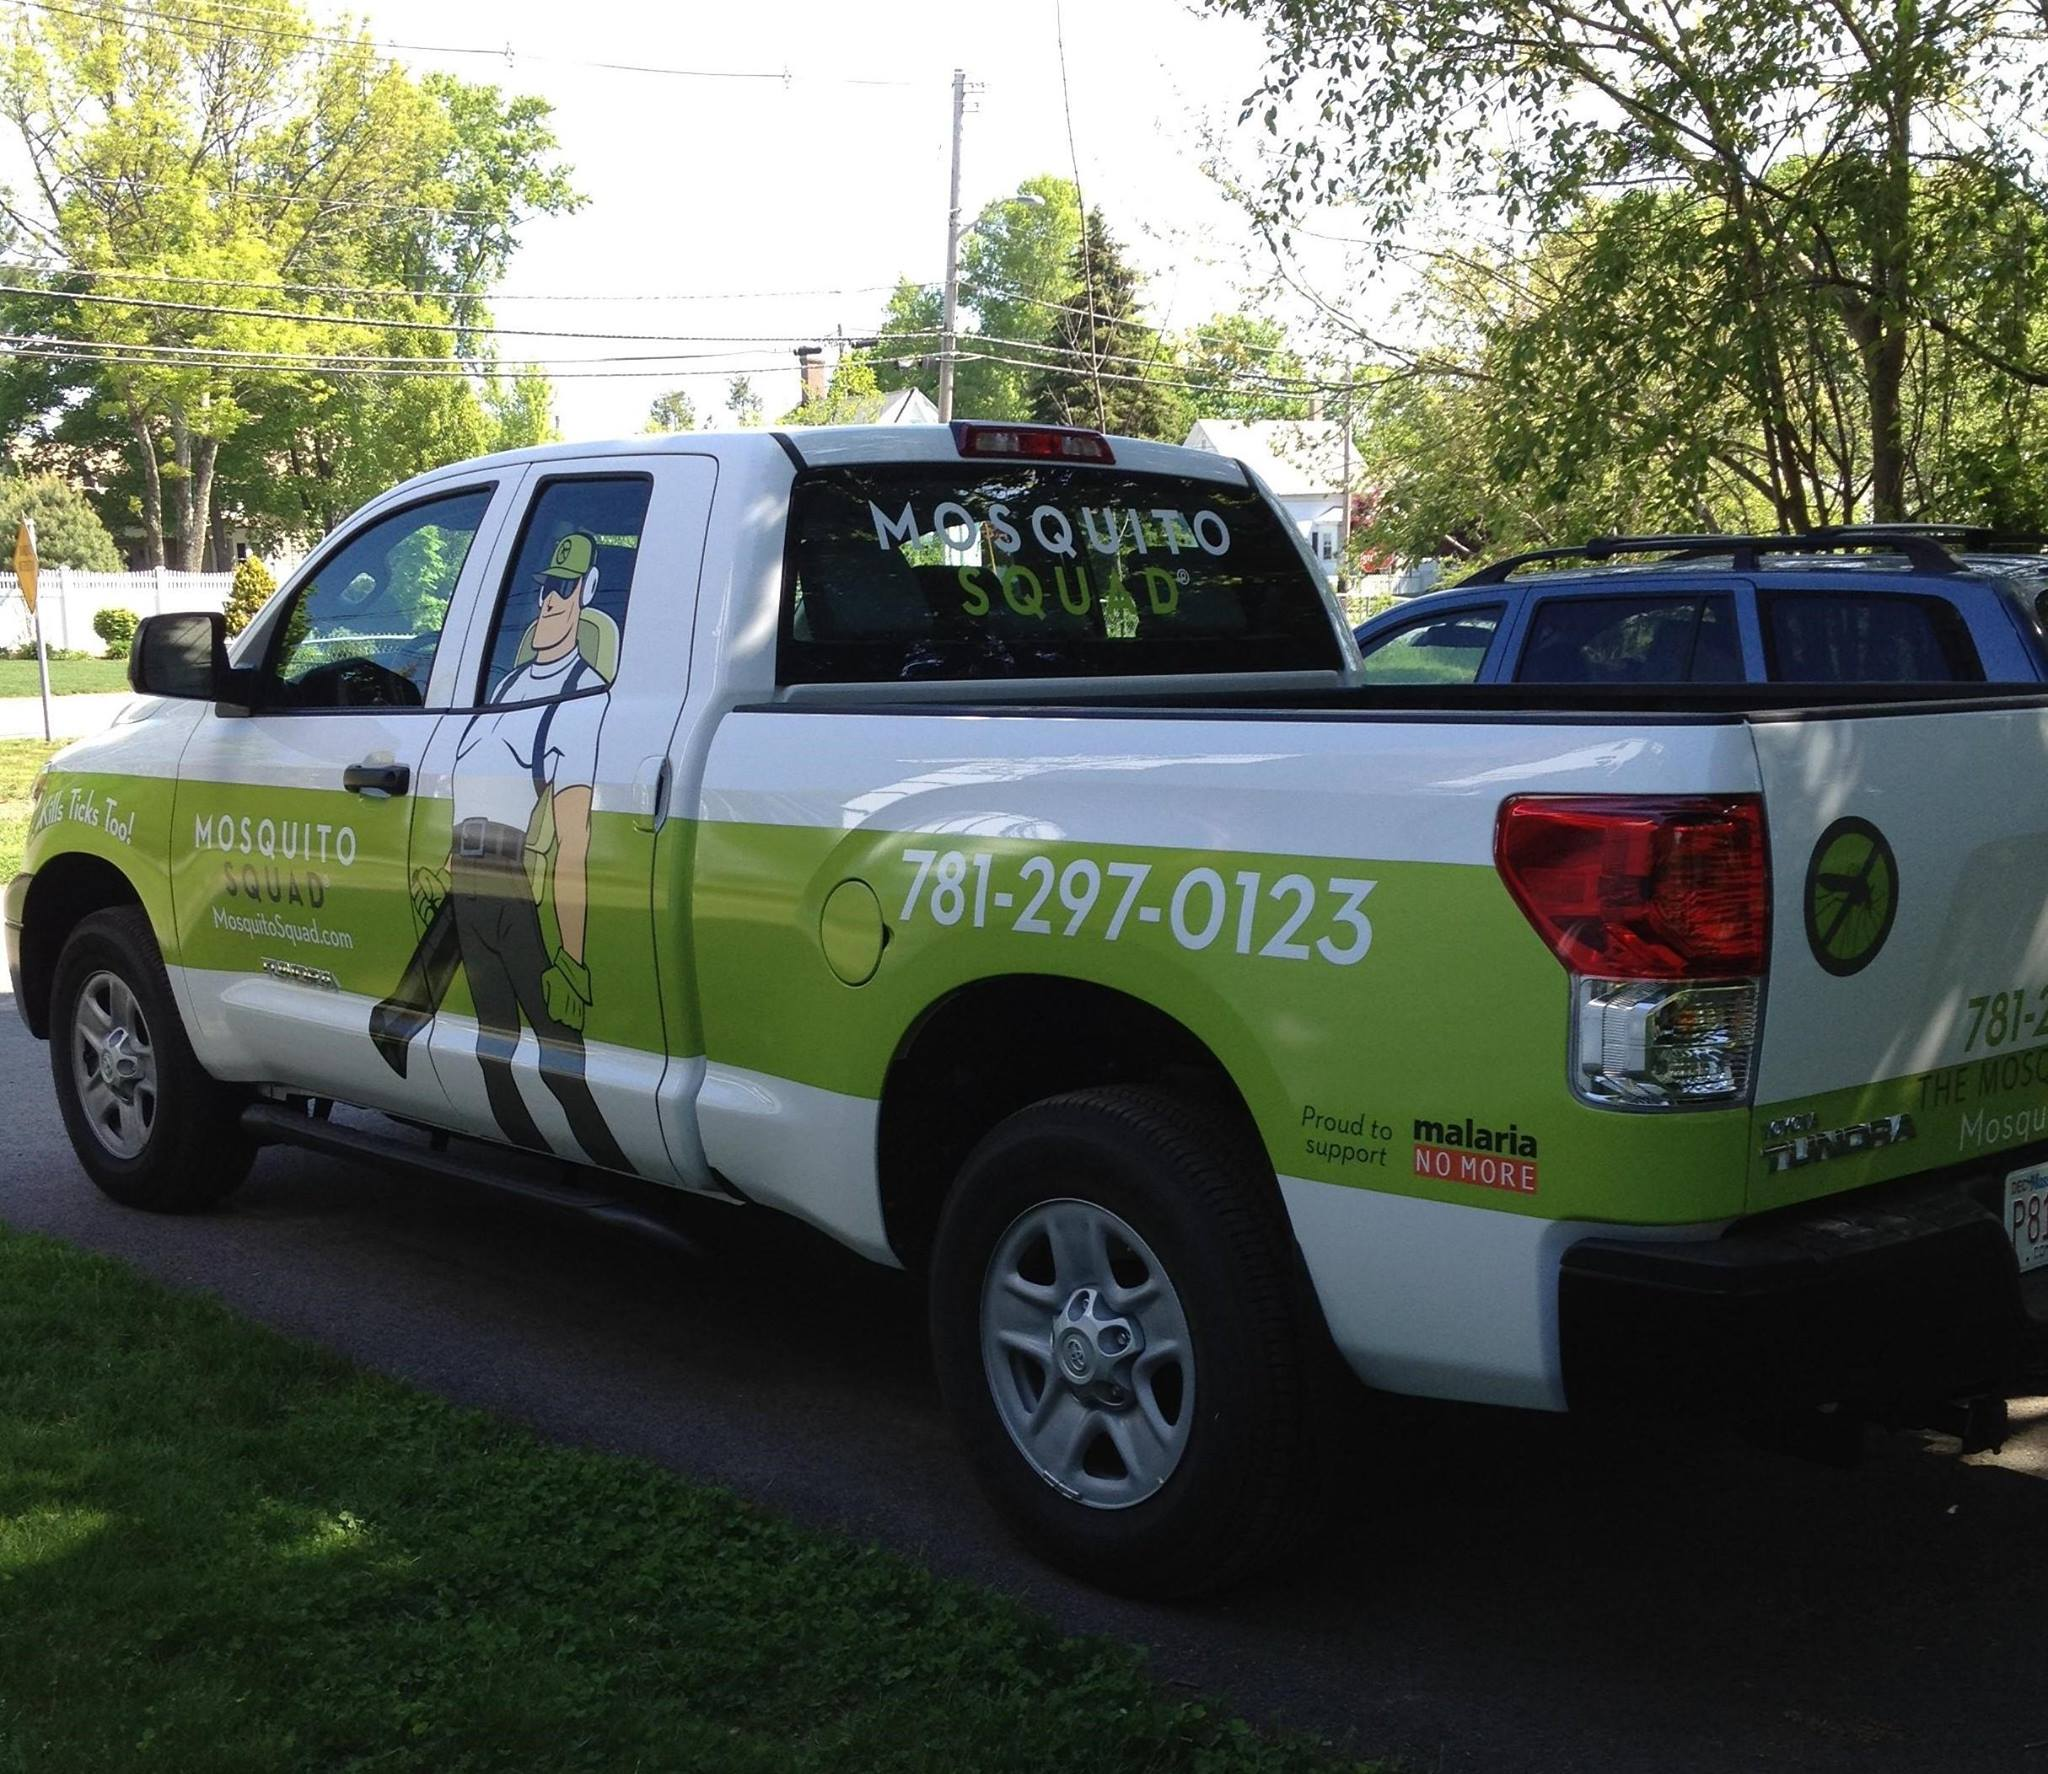 Mosquito Squad Truck - Call Today